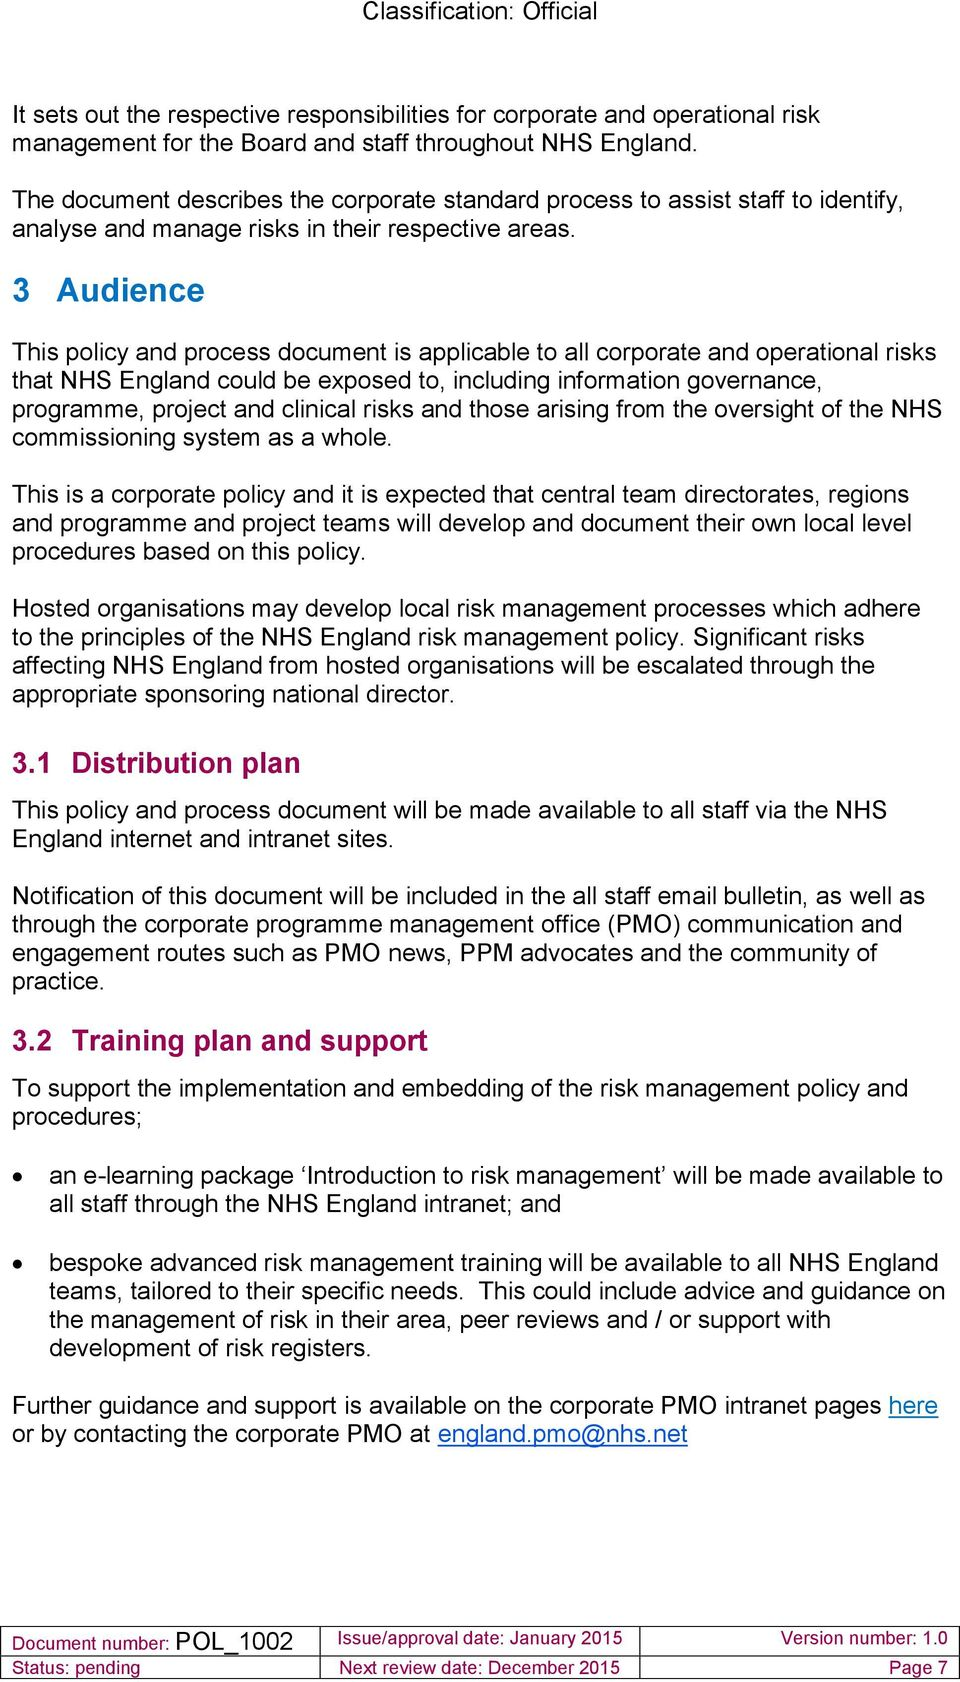 3 Audience This policy and process document is applicable to all corporate and operational risks that NHS England could be exposed to, including information governance, programme, project and